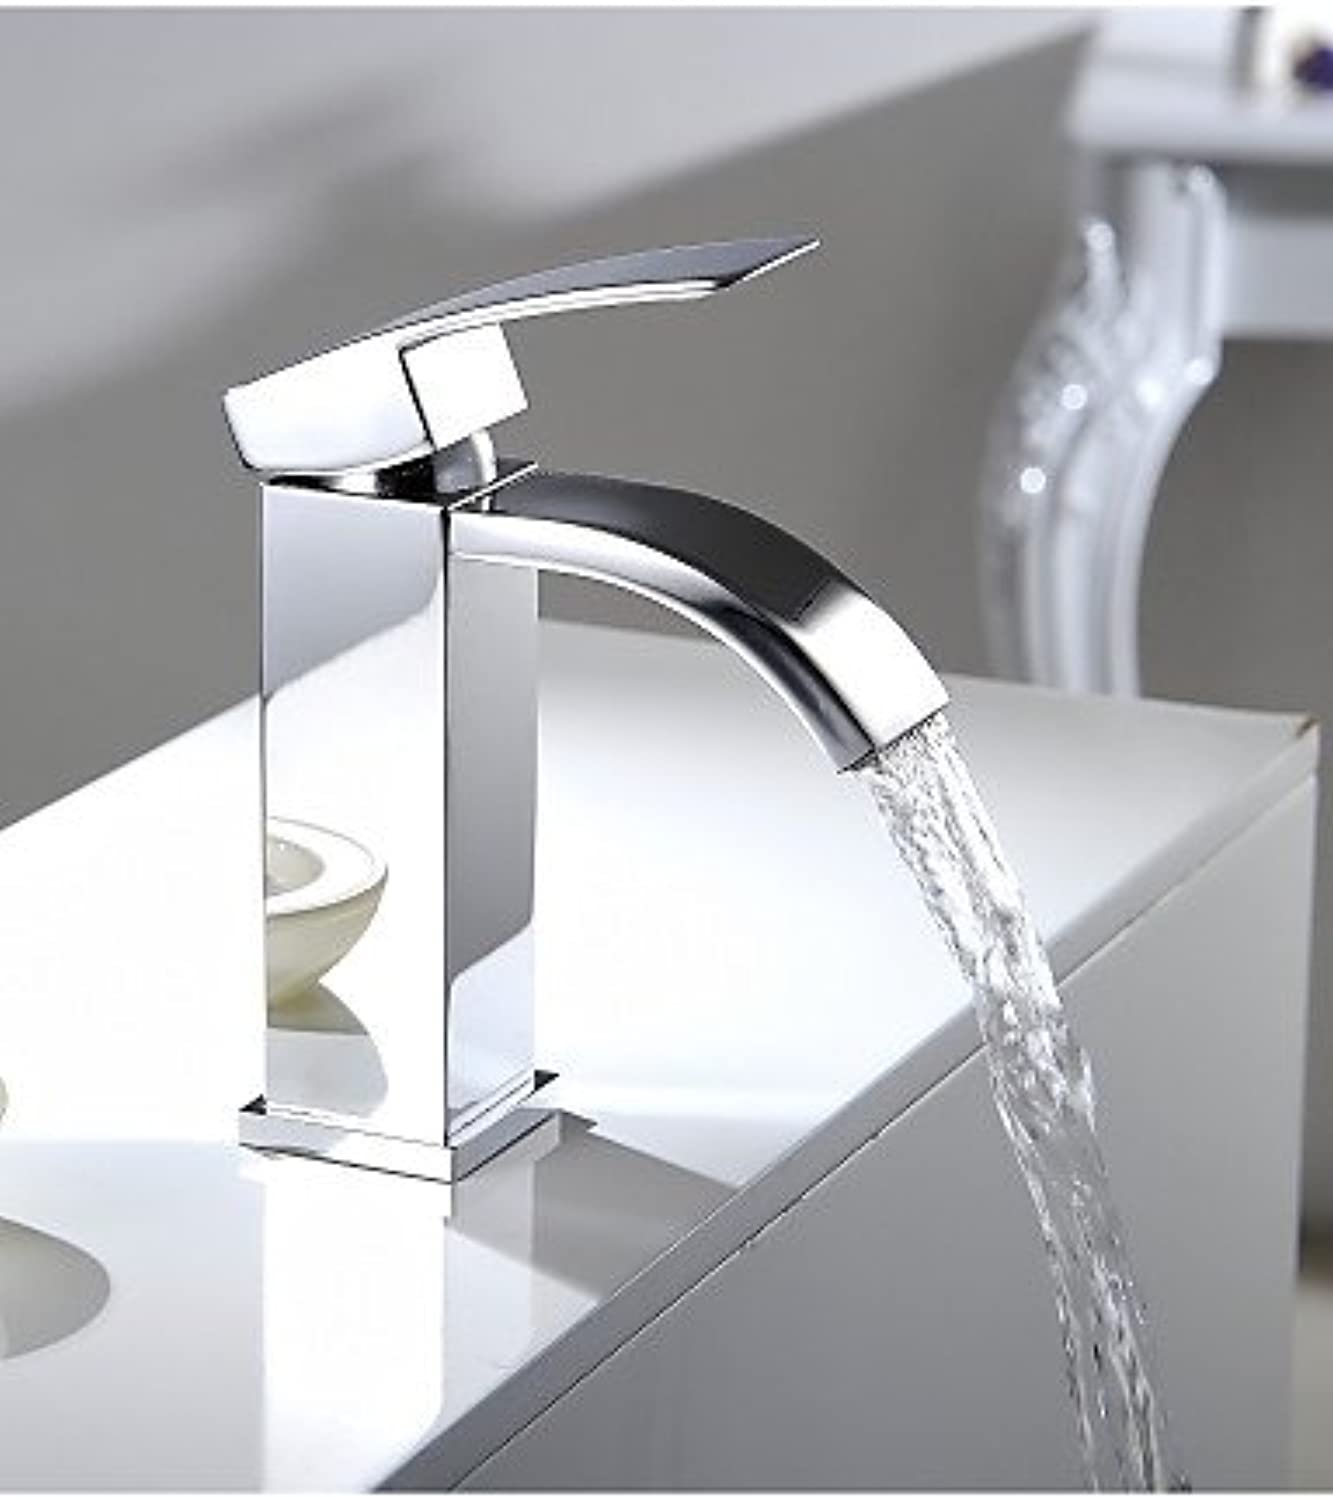 Single Handle Waterfall Bathroom Vanity Sink Vessel Faucet with Extra Large Rectangular Spout Lavatory Mixer Tap Chrome